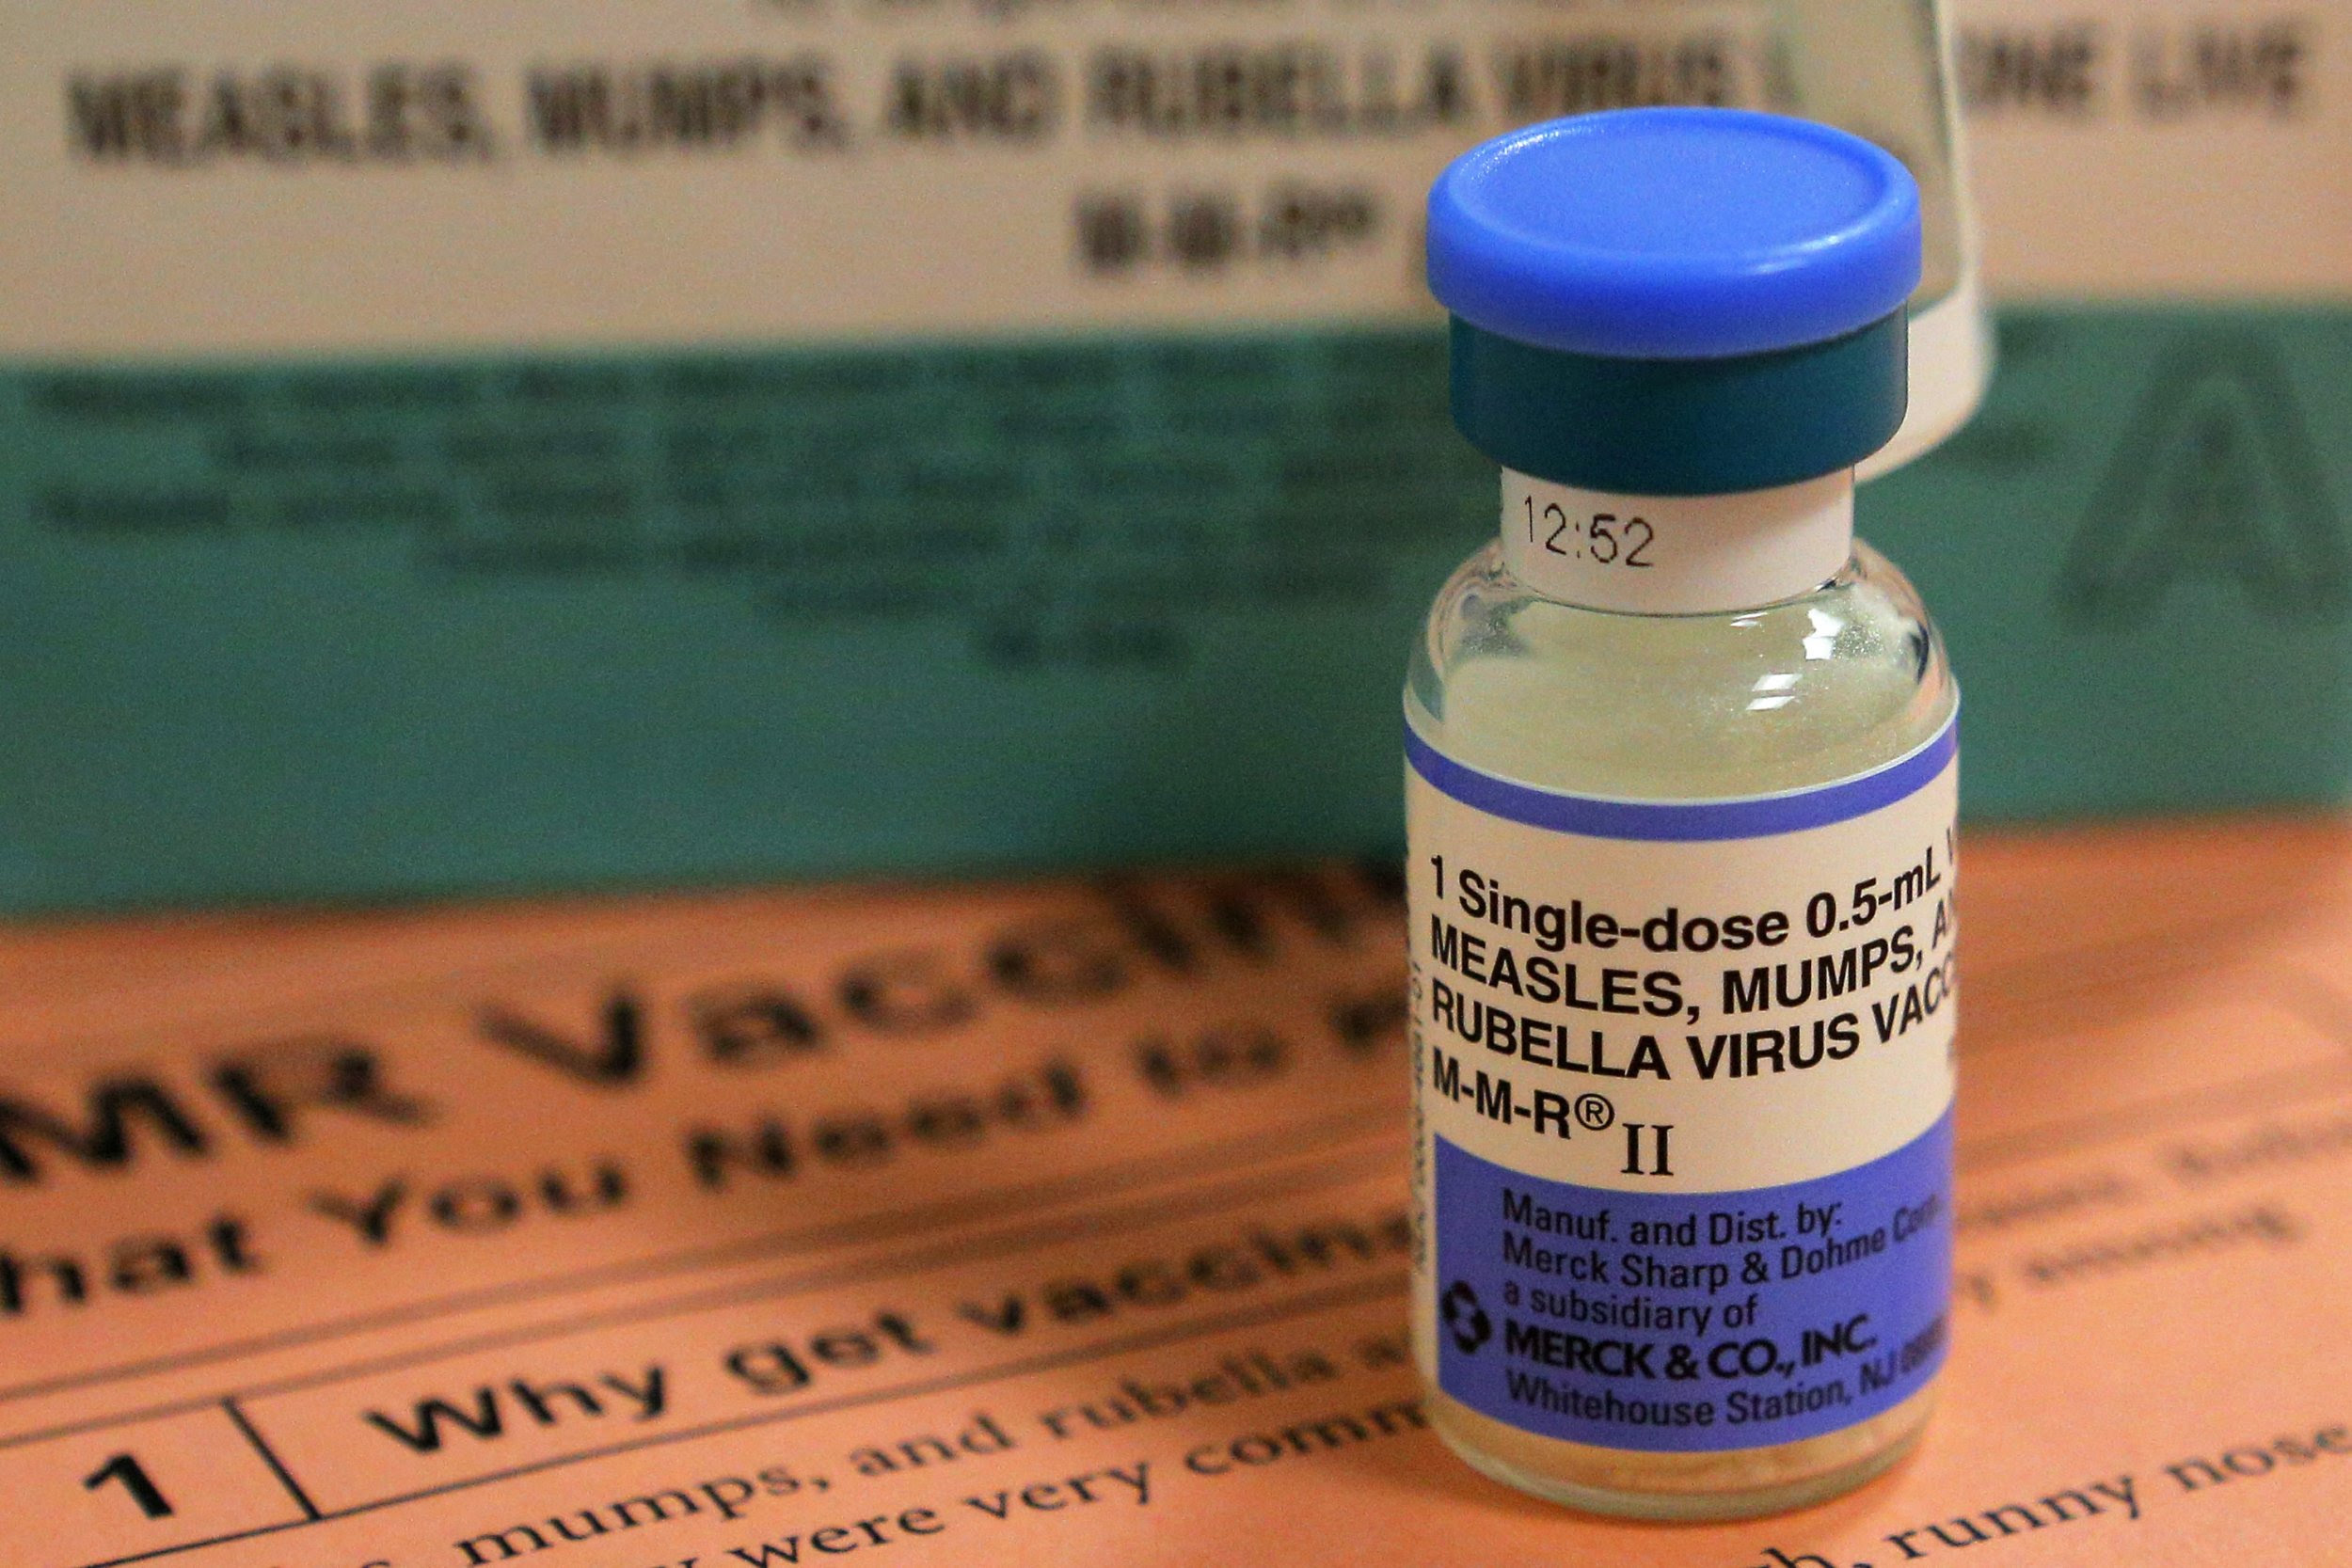 Another study shows that vaccines don't cause autism. REUTERS/BRIAN SNYDER